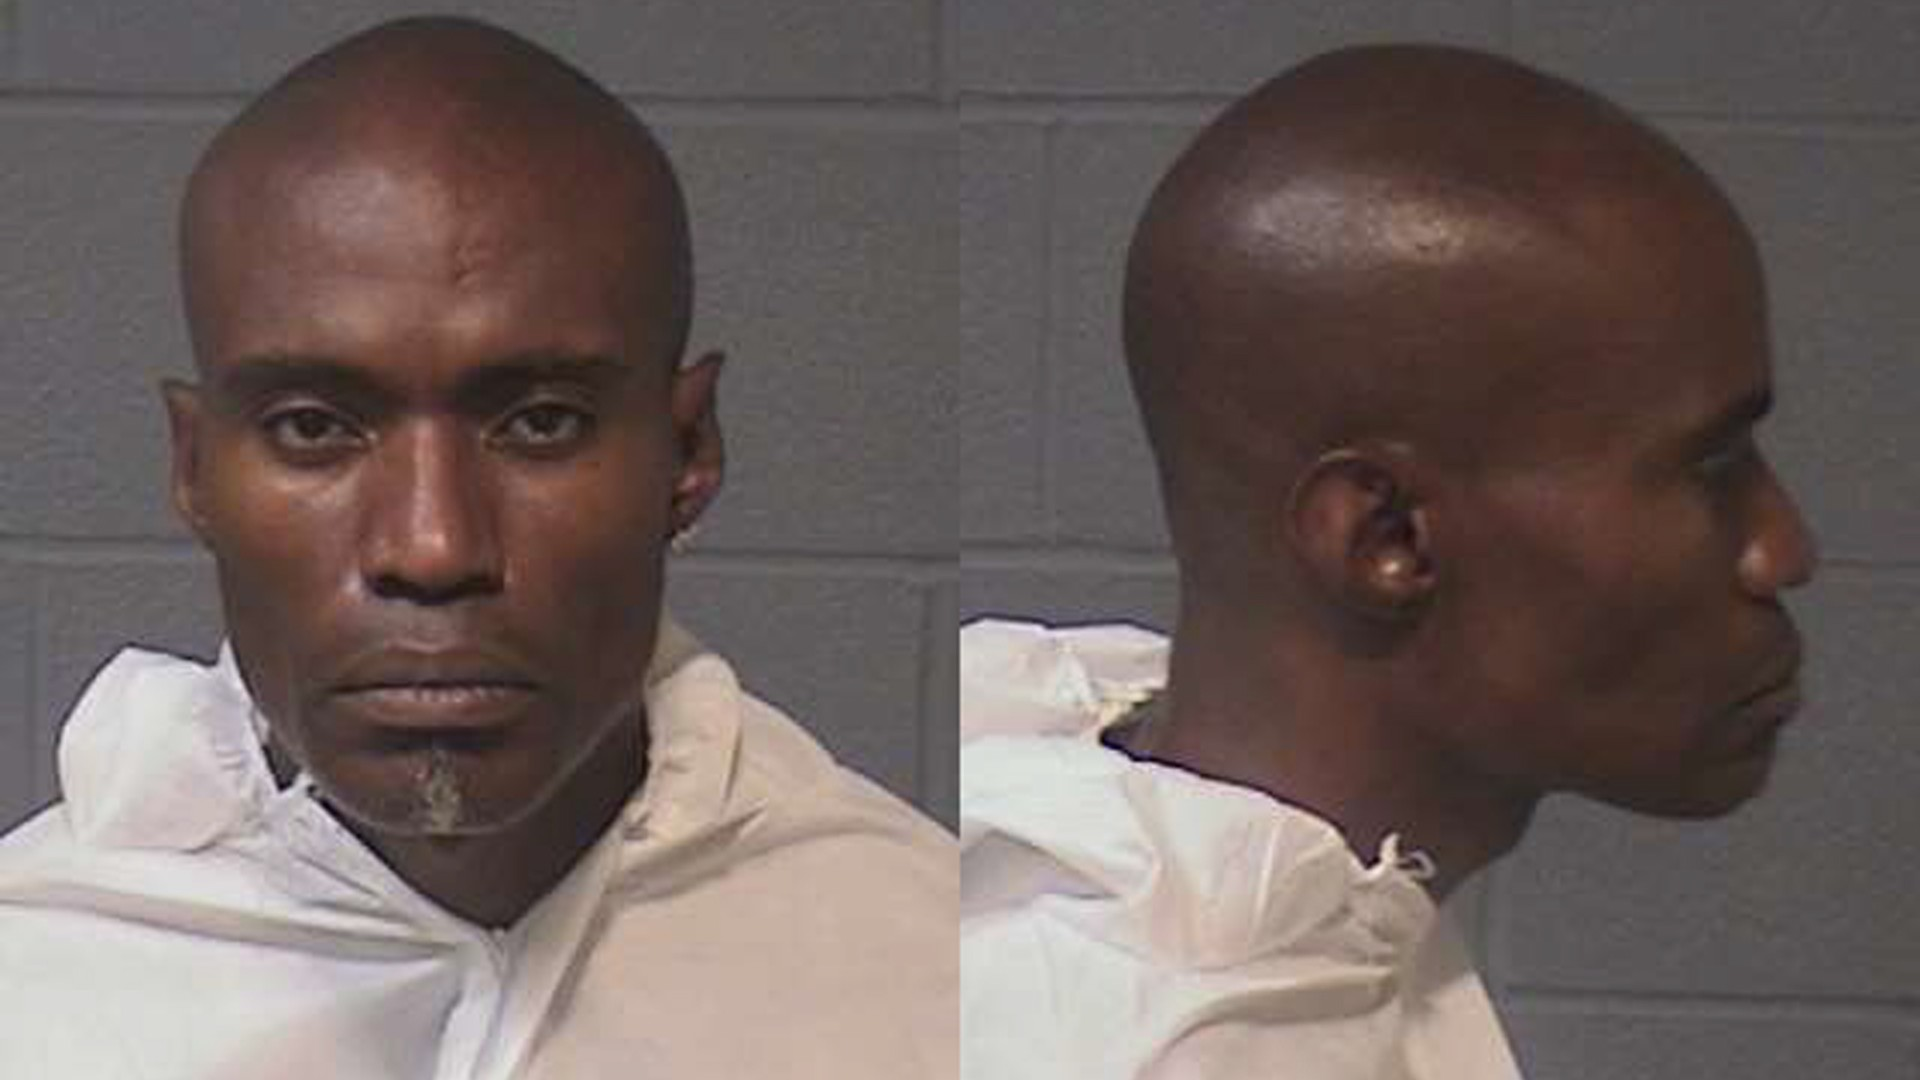 Jerry Thompson is seen in photos released by the Hartford Police Department